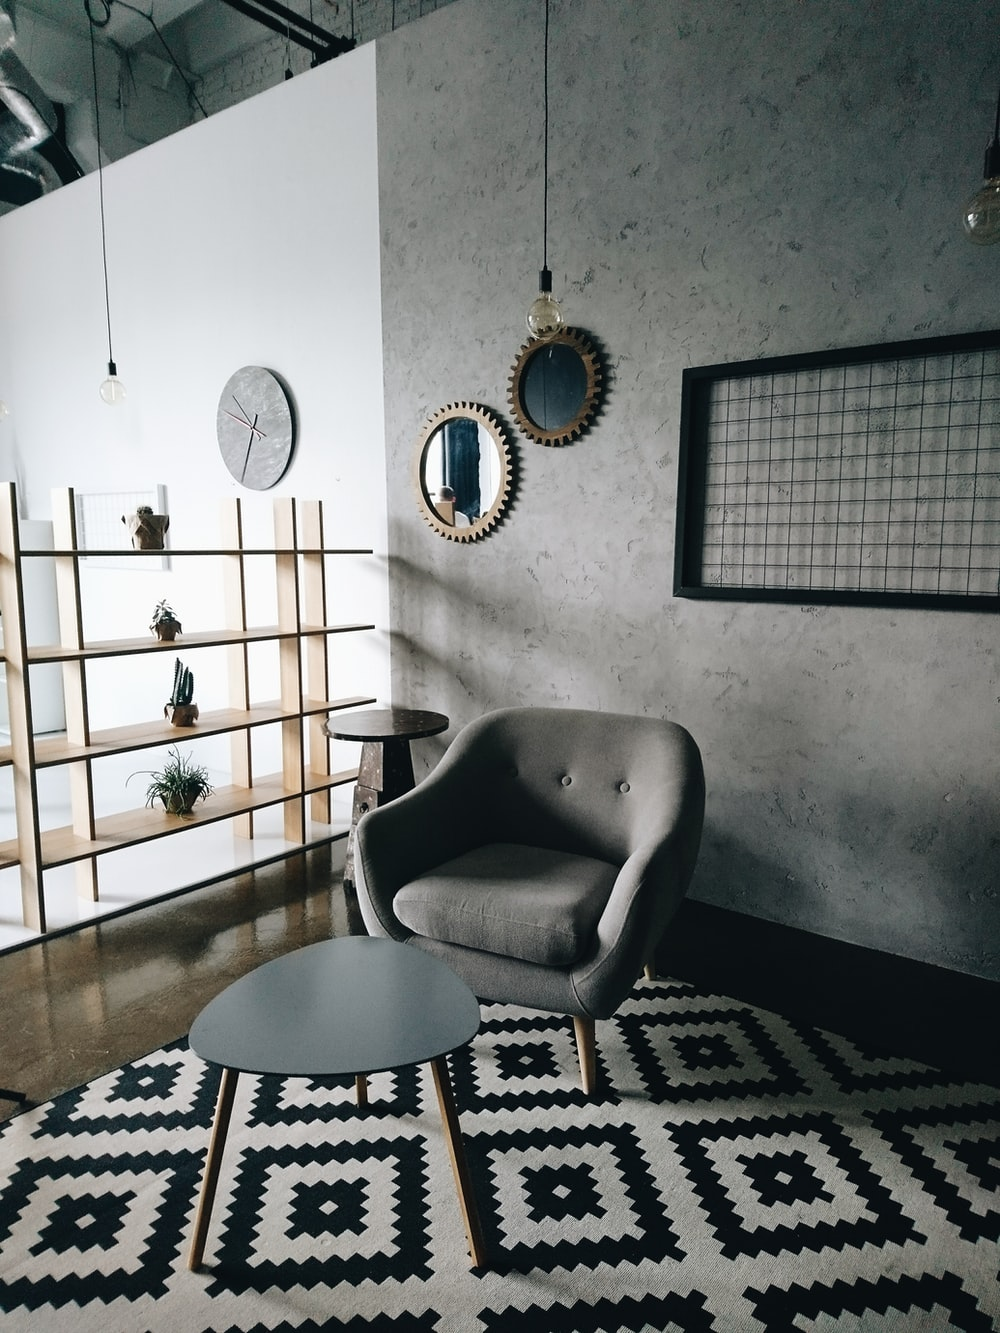 gray padded couch in front of wooden center table